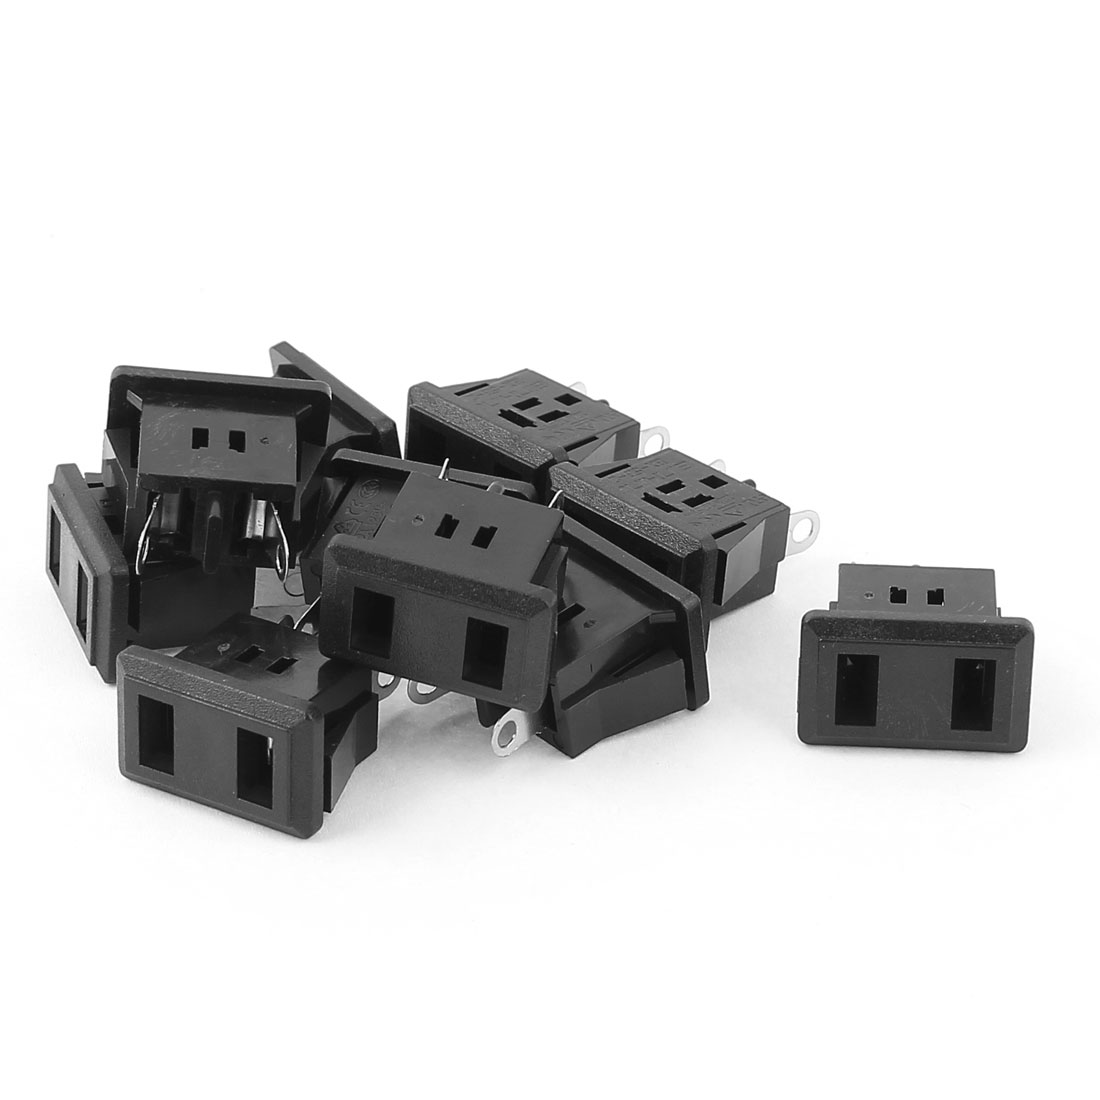 10Pcs PCB Board IEC320 C9 Female Power Socket Adapter AC 125V 12A